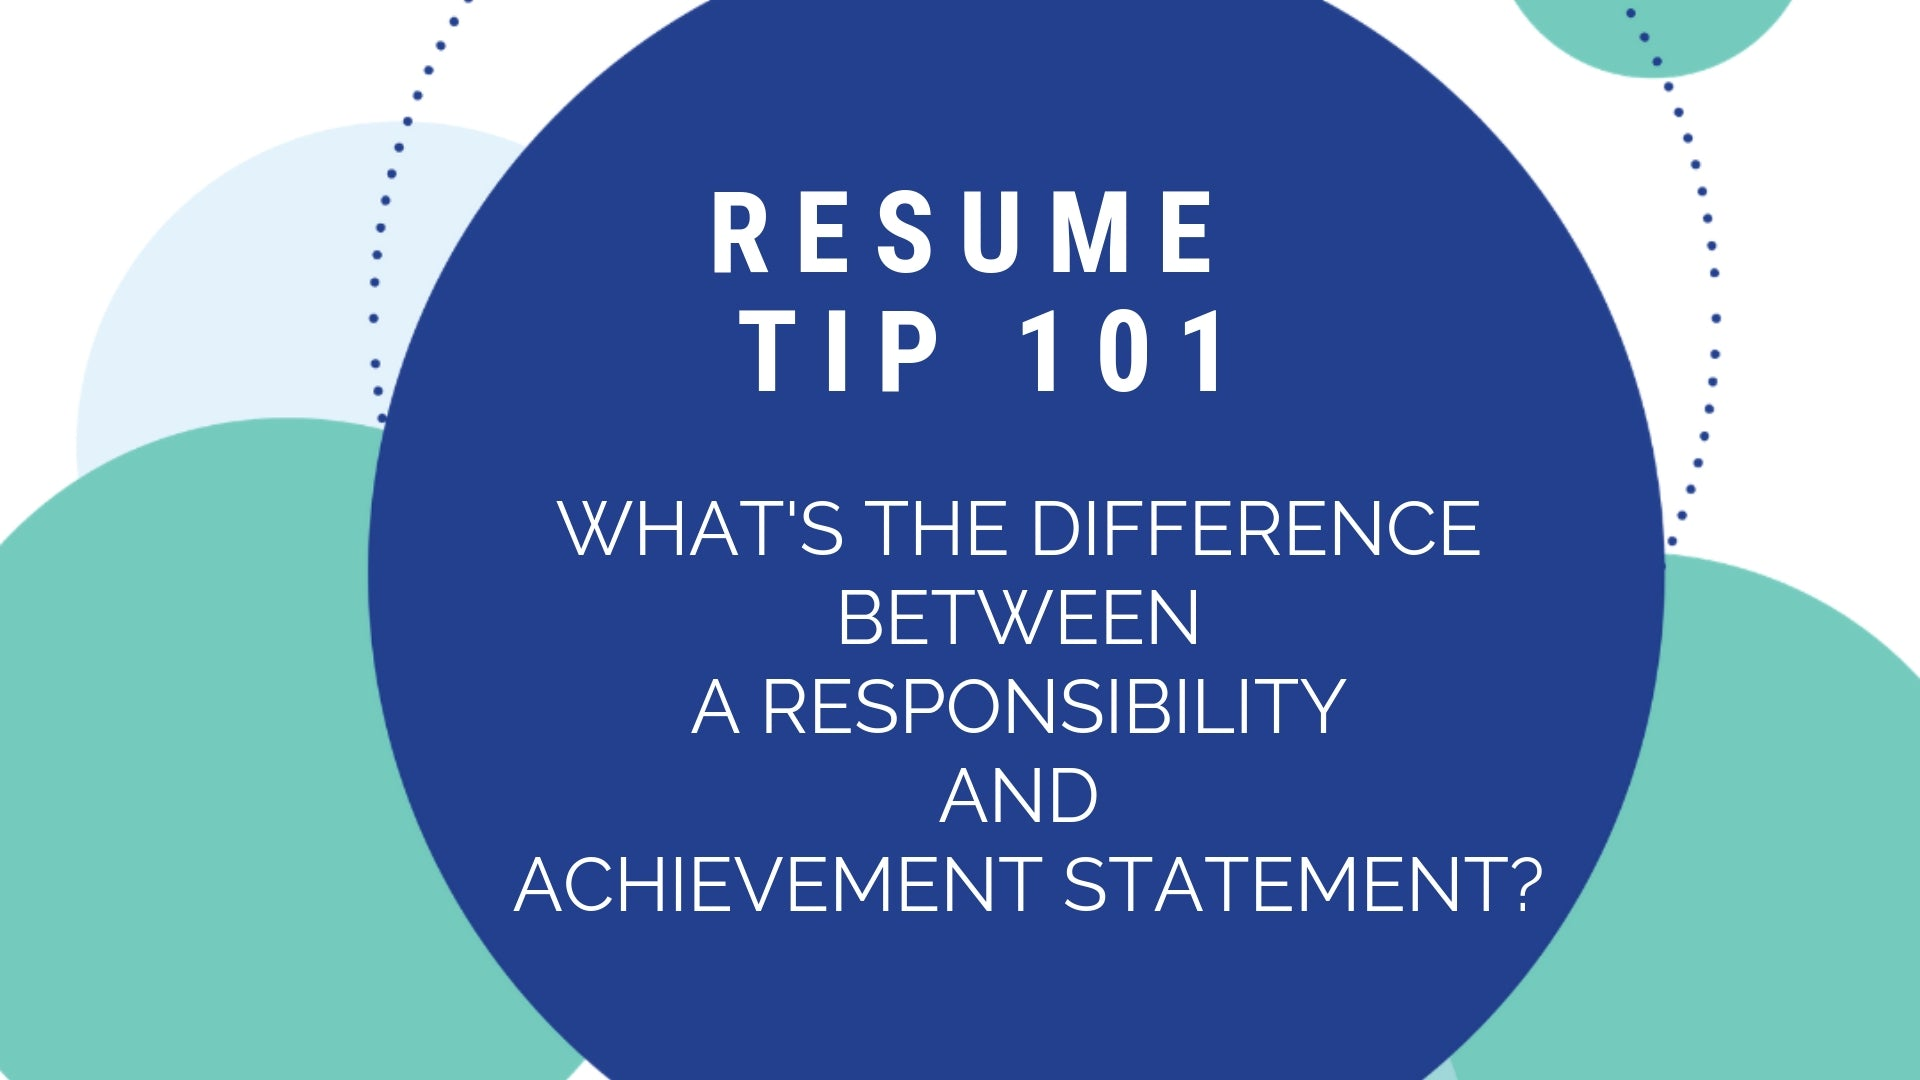 Resume Tips 101: What's the difference between a responsibility and achievement statement?